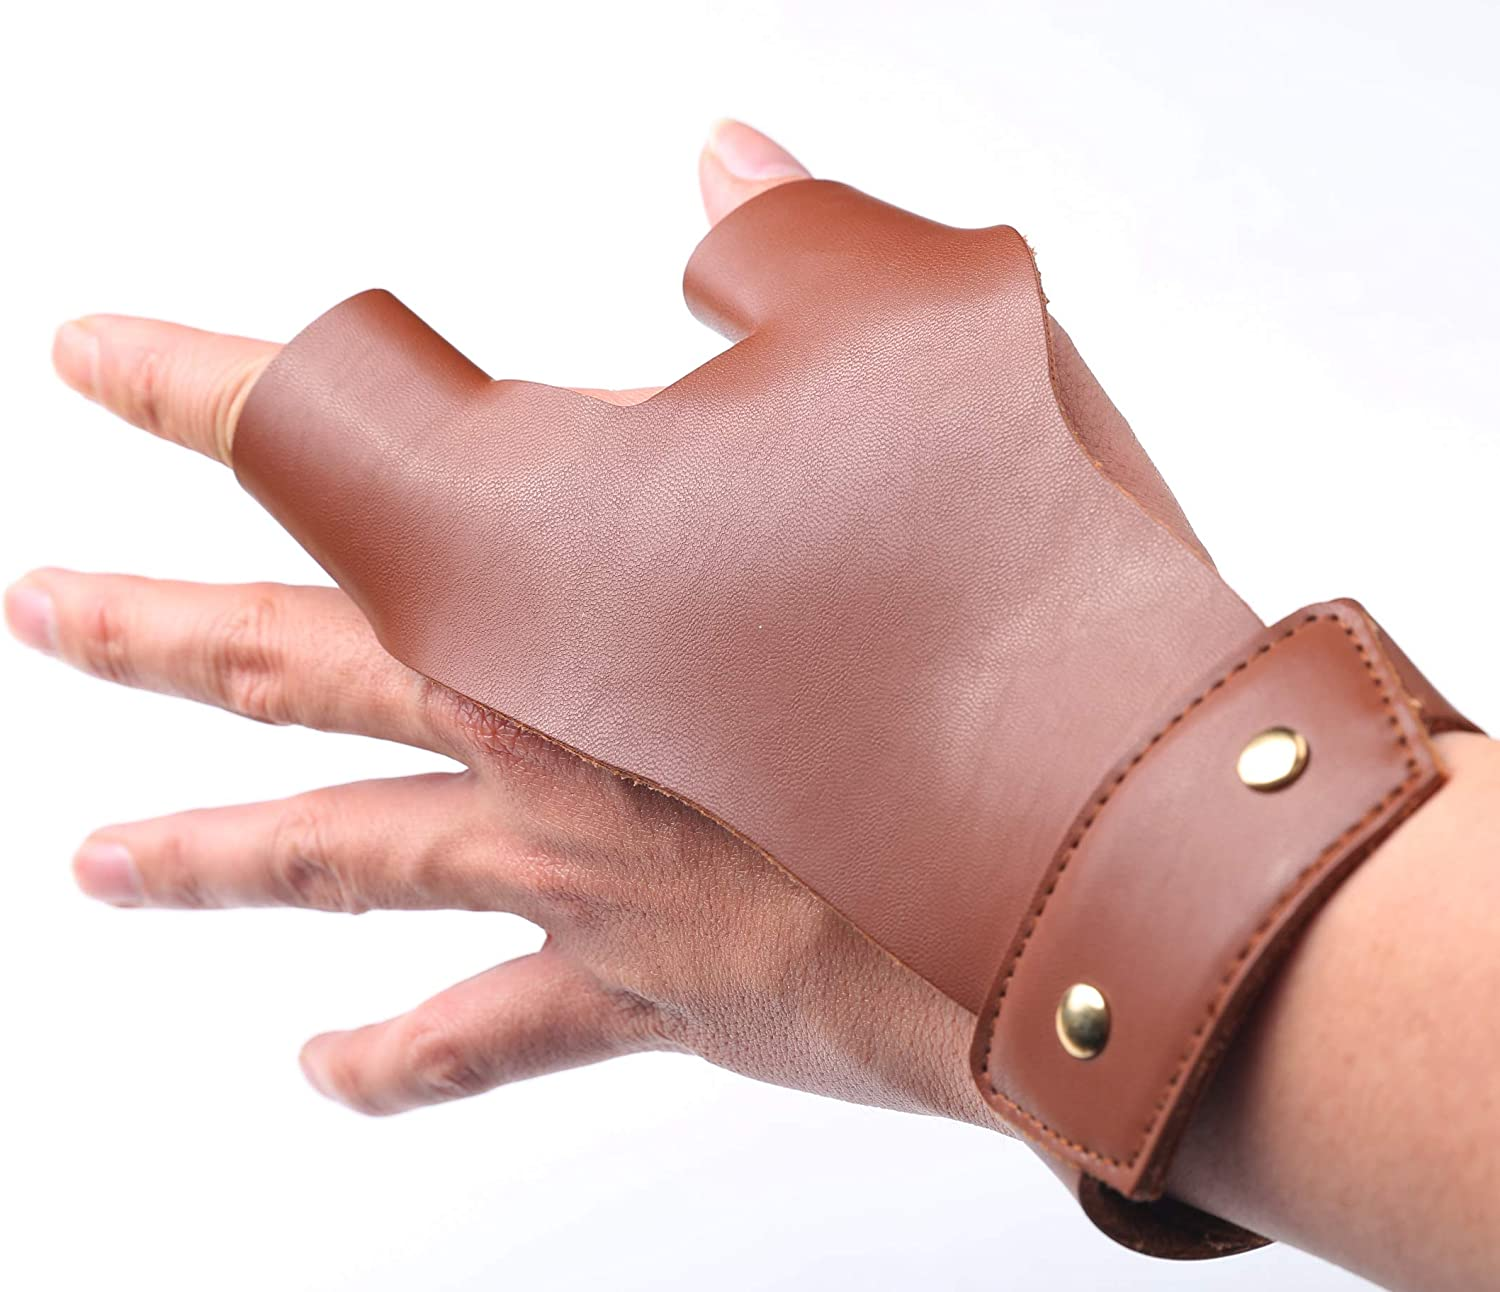 LOKHEIRA ARCHERY Arrow New products world's At the price of surprise highest quality popular Gloves 2 Finger Guard Leather Protective